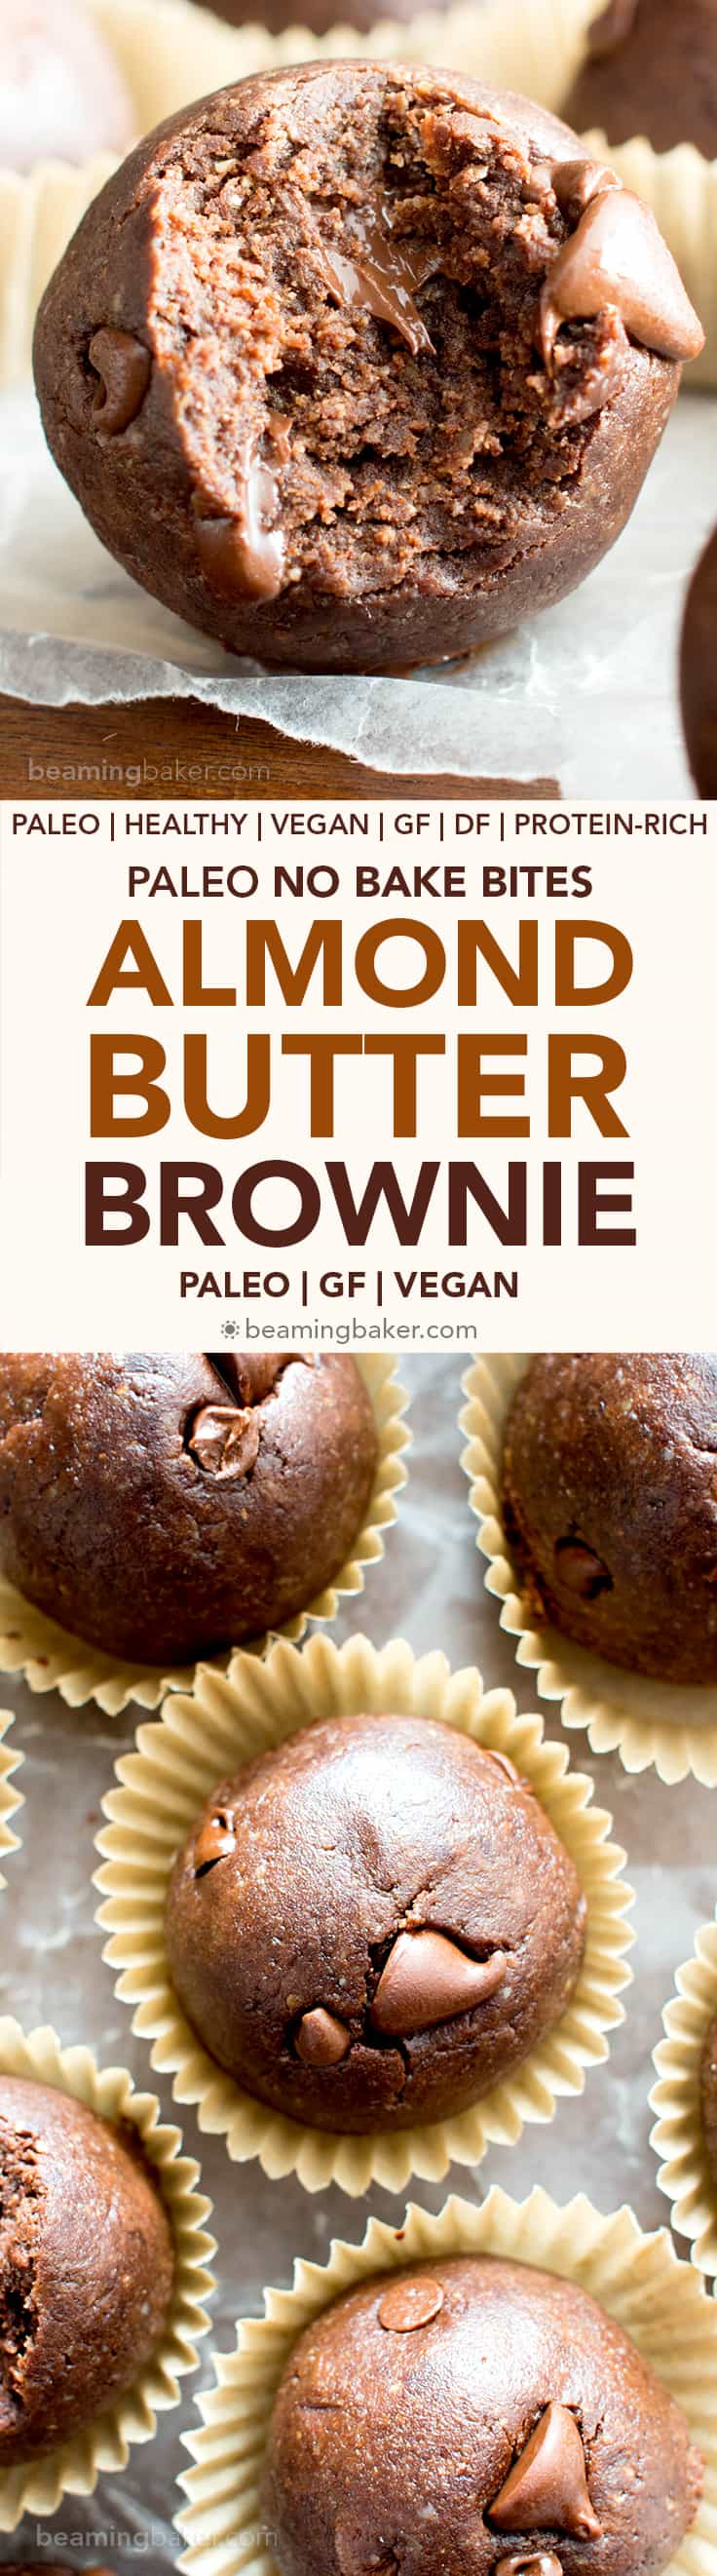 No Bake Almond Butter Paleo Brownie Bites (V, GF): Melt in your mouth fudgy paleo brownie bites that taste like a bite of pure chocolate. #Vegan #Paleo #DairyFree #GlutenFree #Chocolate | Recipe on BeamingBaker.com